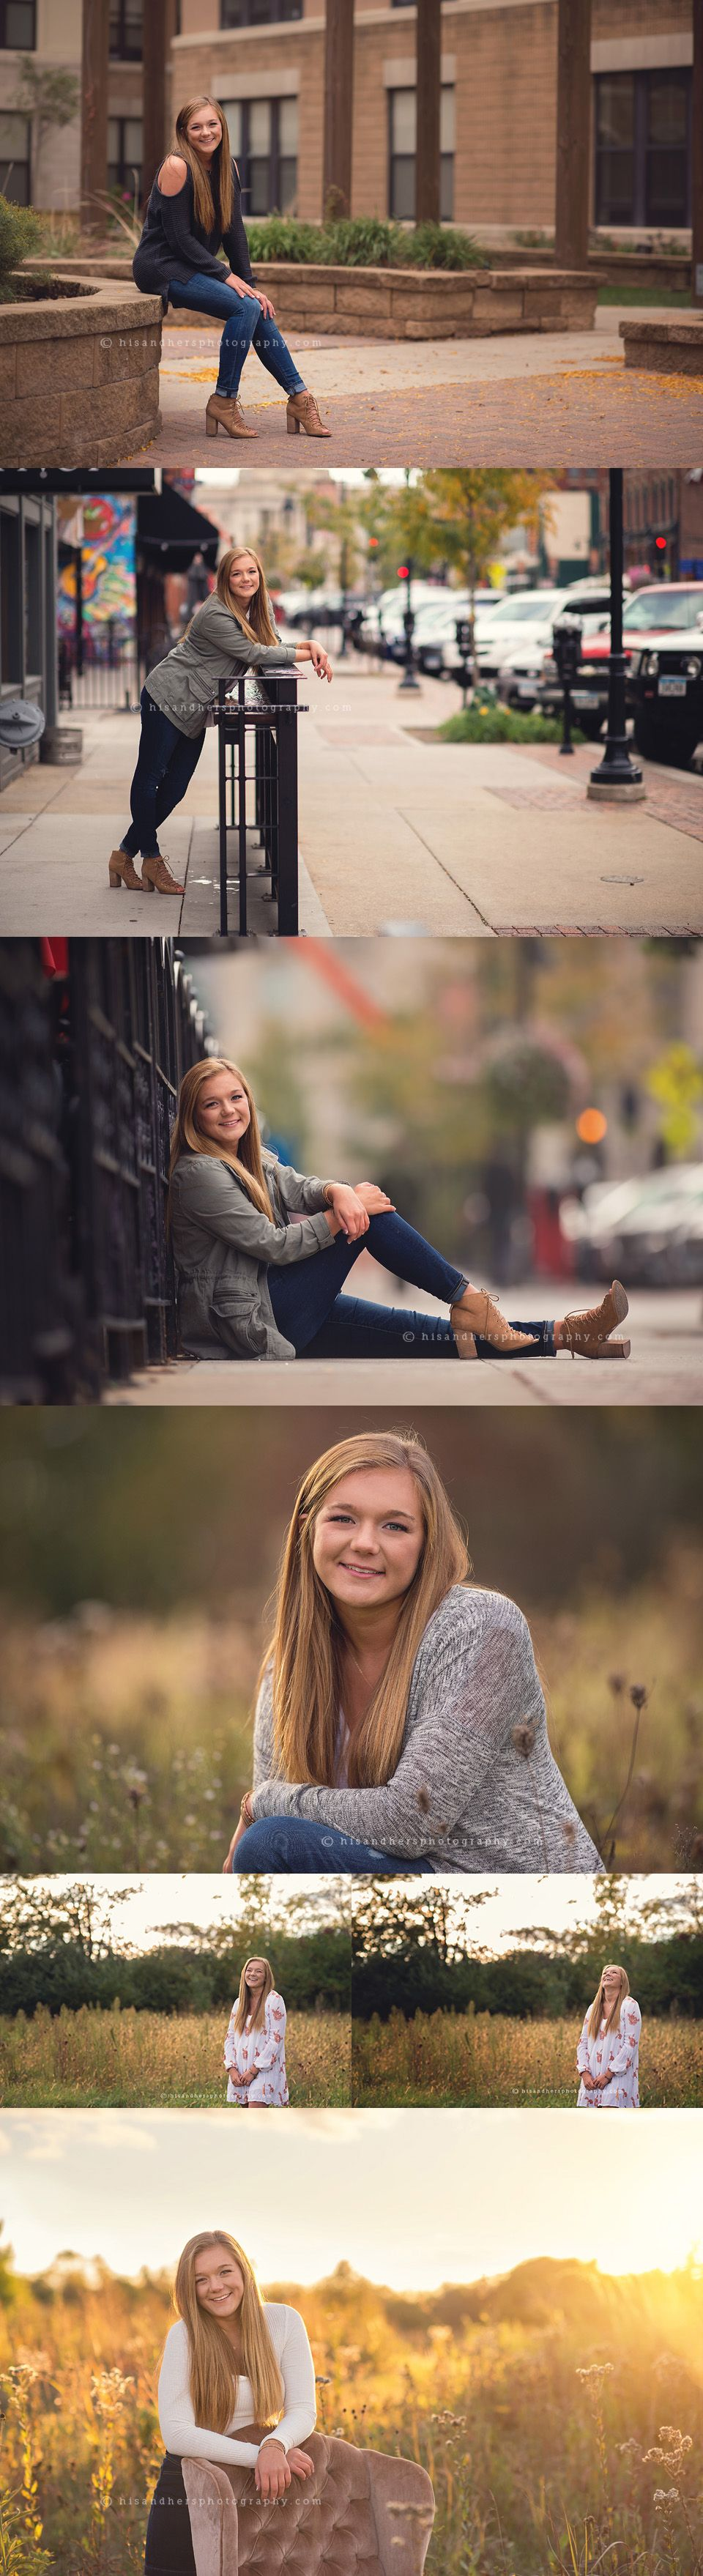 senior pictures senior portraits high school senior yearbook class of 2017 2018 2019 des moines iowa photographer